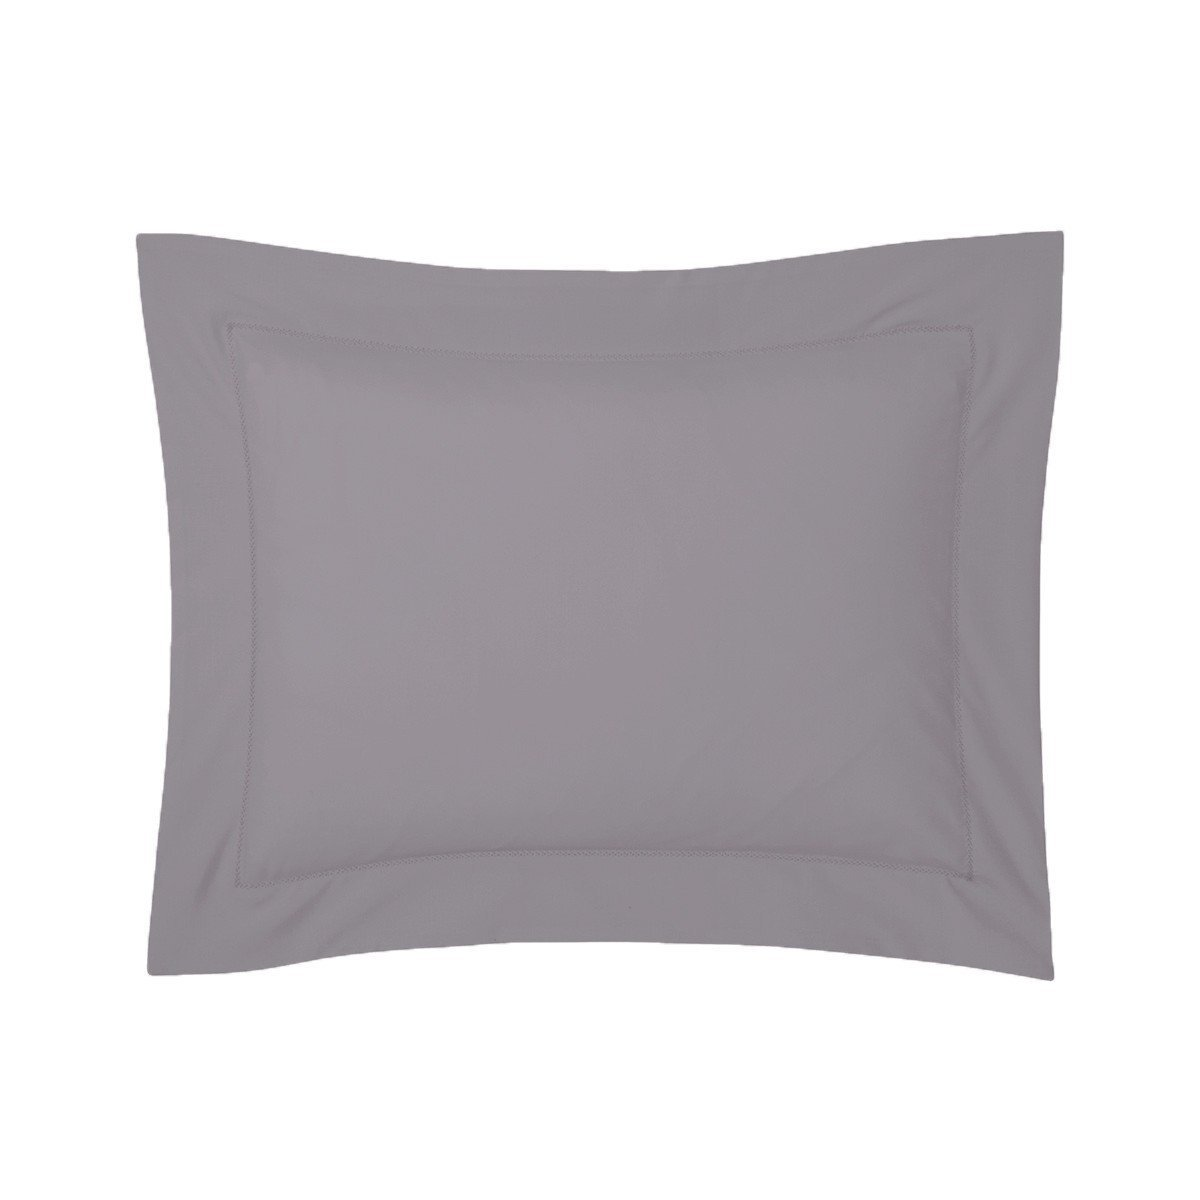 Roma Platine Gray Bedding Collection by Yves Delorme | Fig Linens - Gray bed linen, boudoir sham